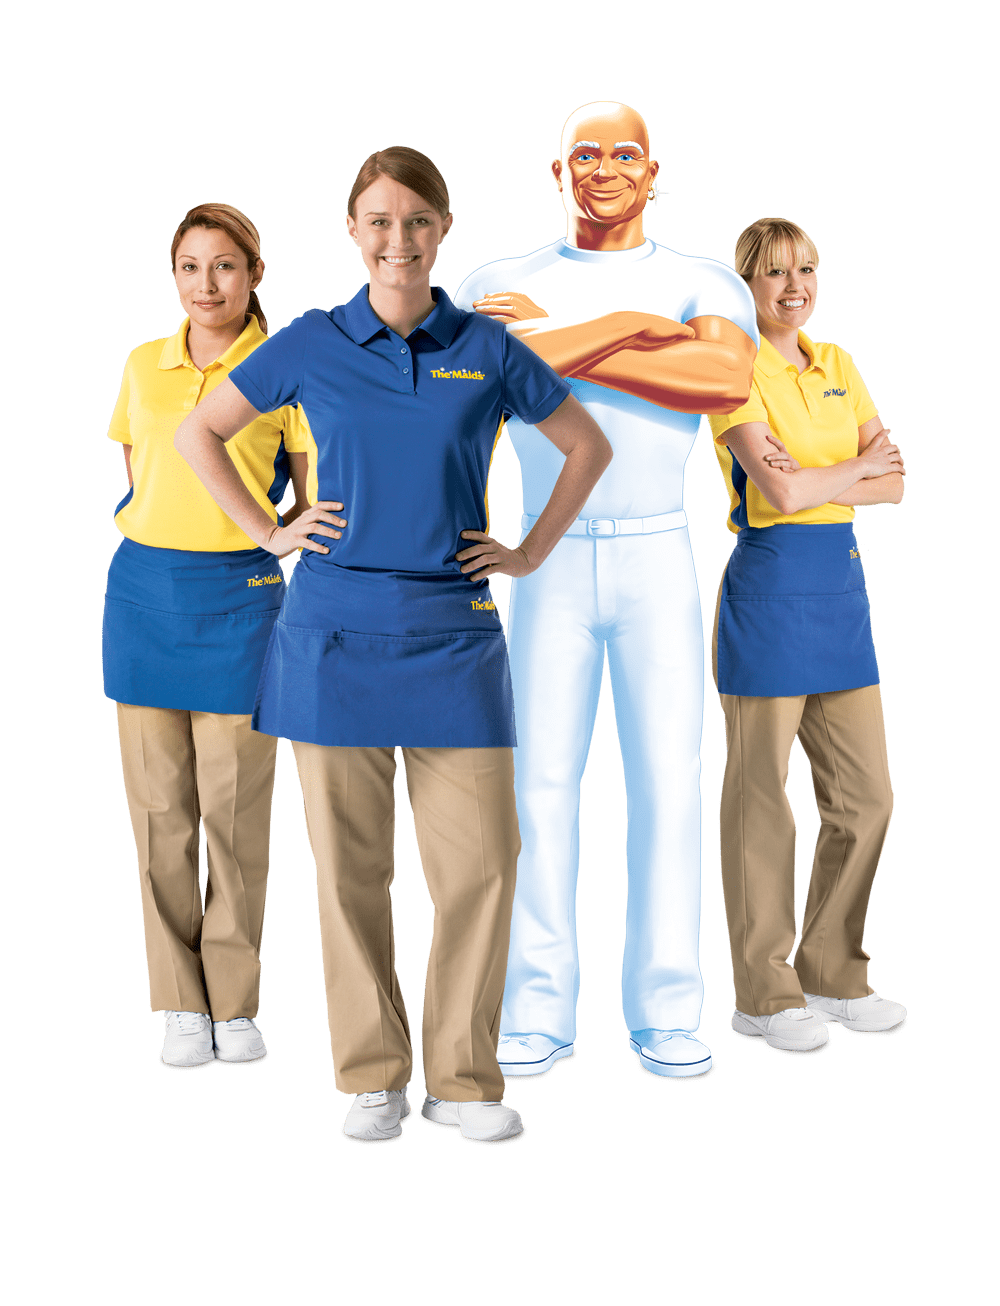 The Maids House Cleaning - The Maids in Greater Danbury and Litchfield Counties Home Cleaning